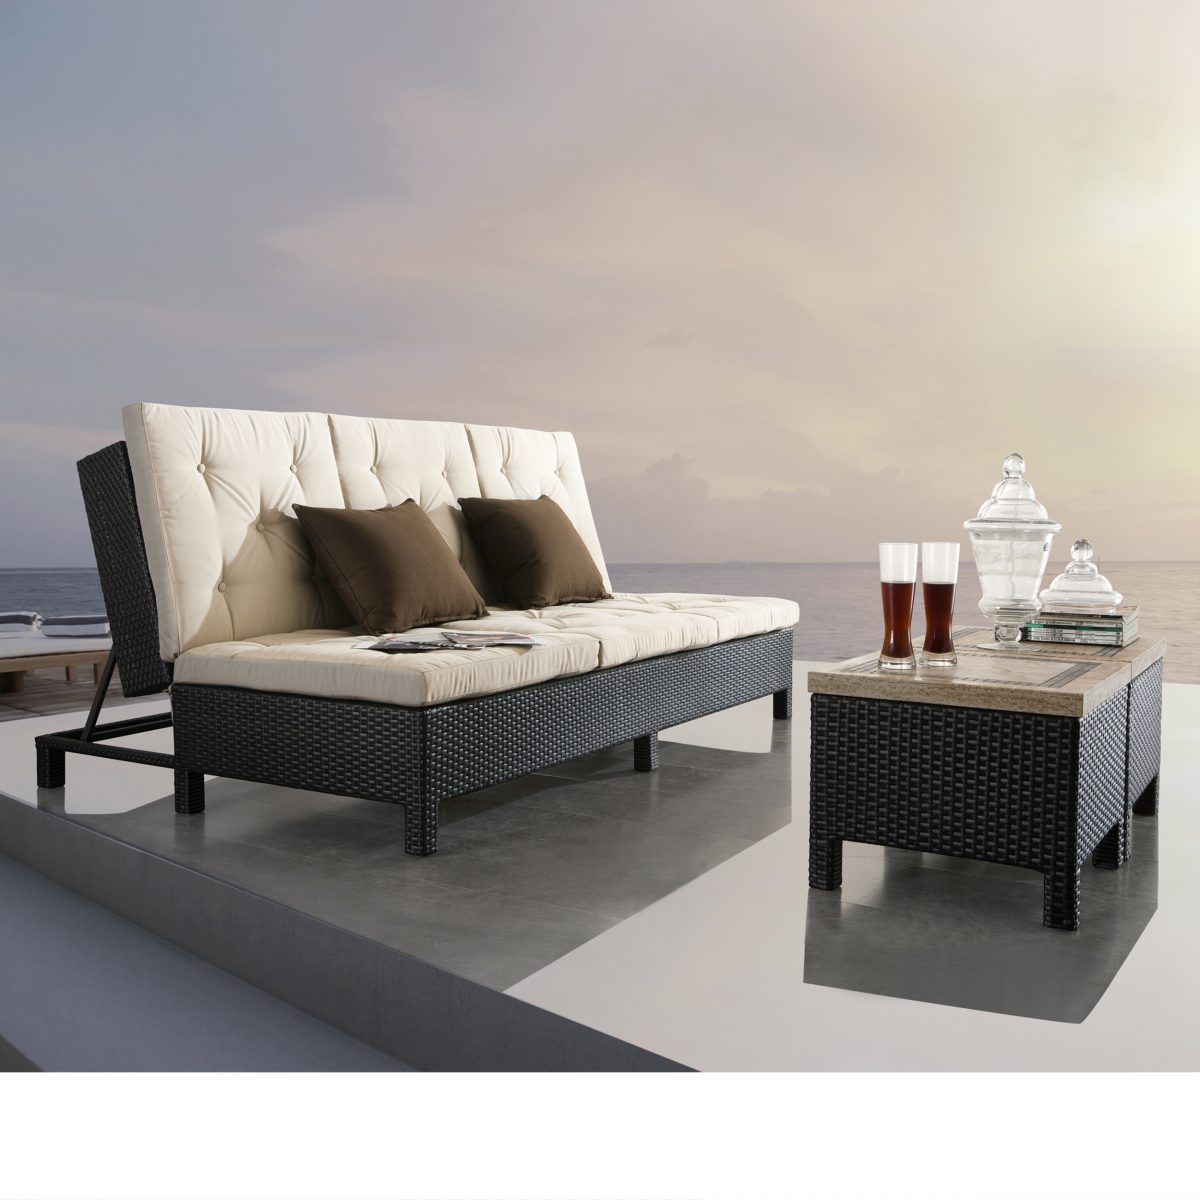 Sirio Euro Patio Double Chaise Lounge Sofa Set Starsong